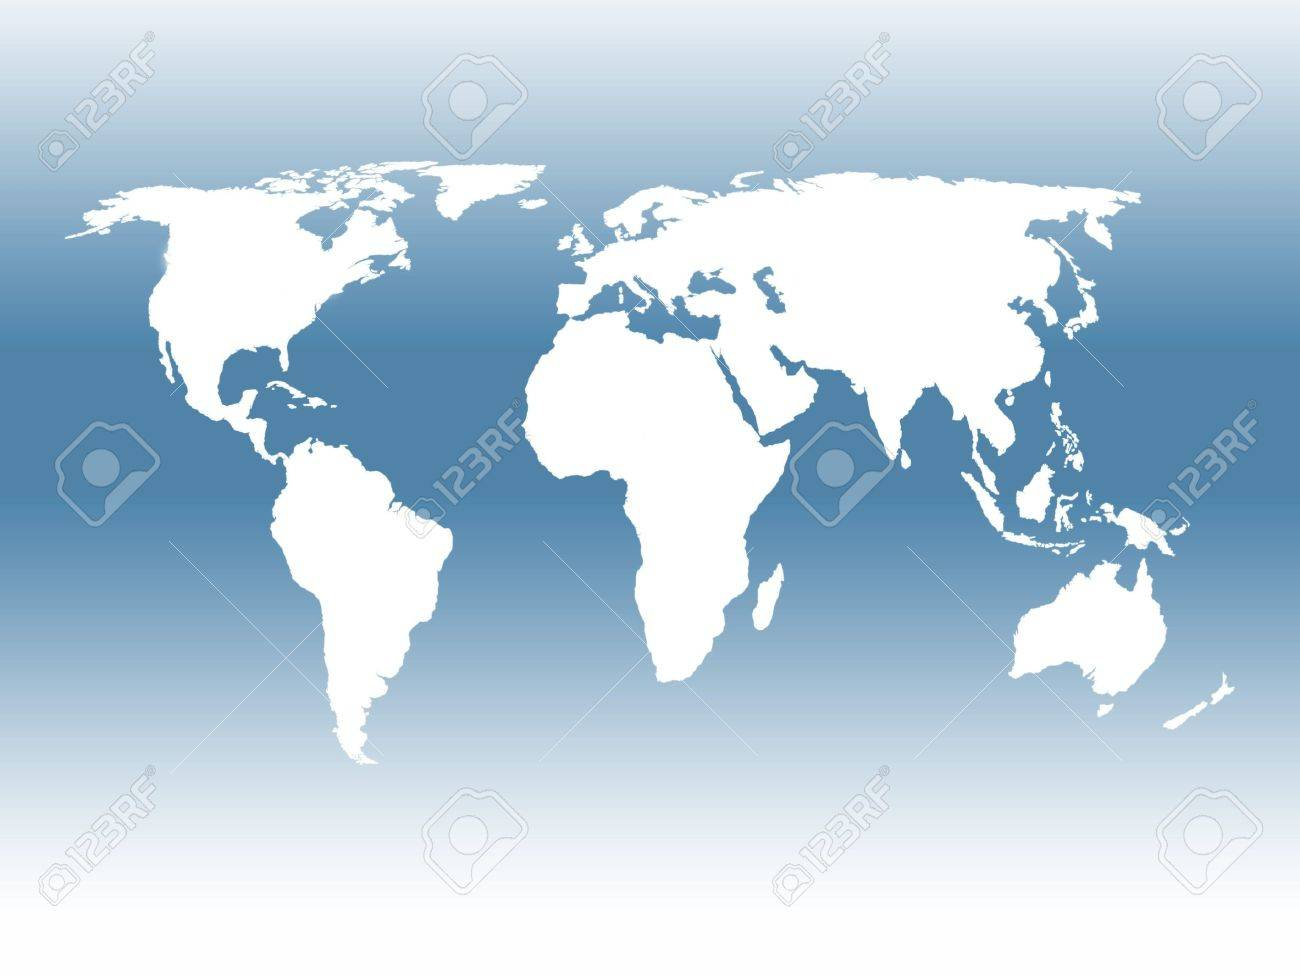 World outline map over blue toned background stock photo picture world outline map over blue toned background stock photo 7741652 gumiabroncs Image collections